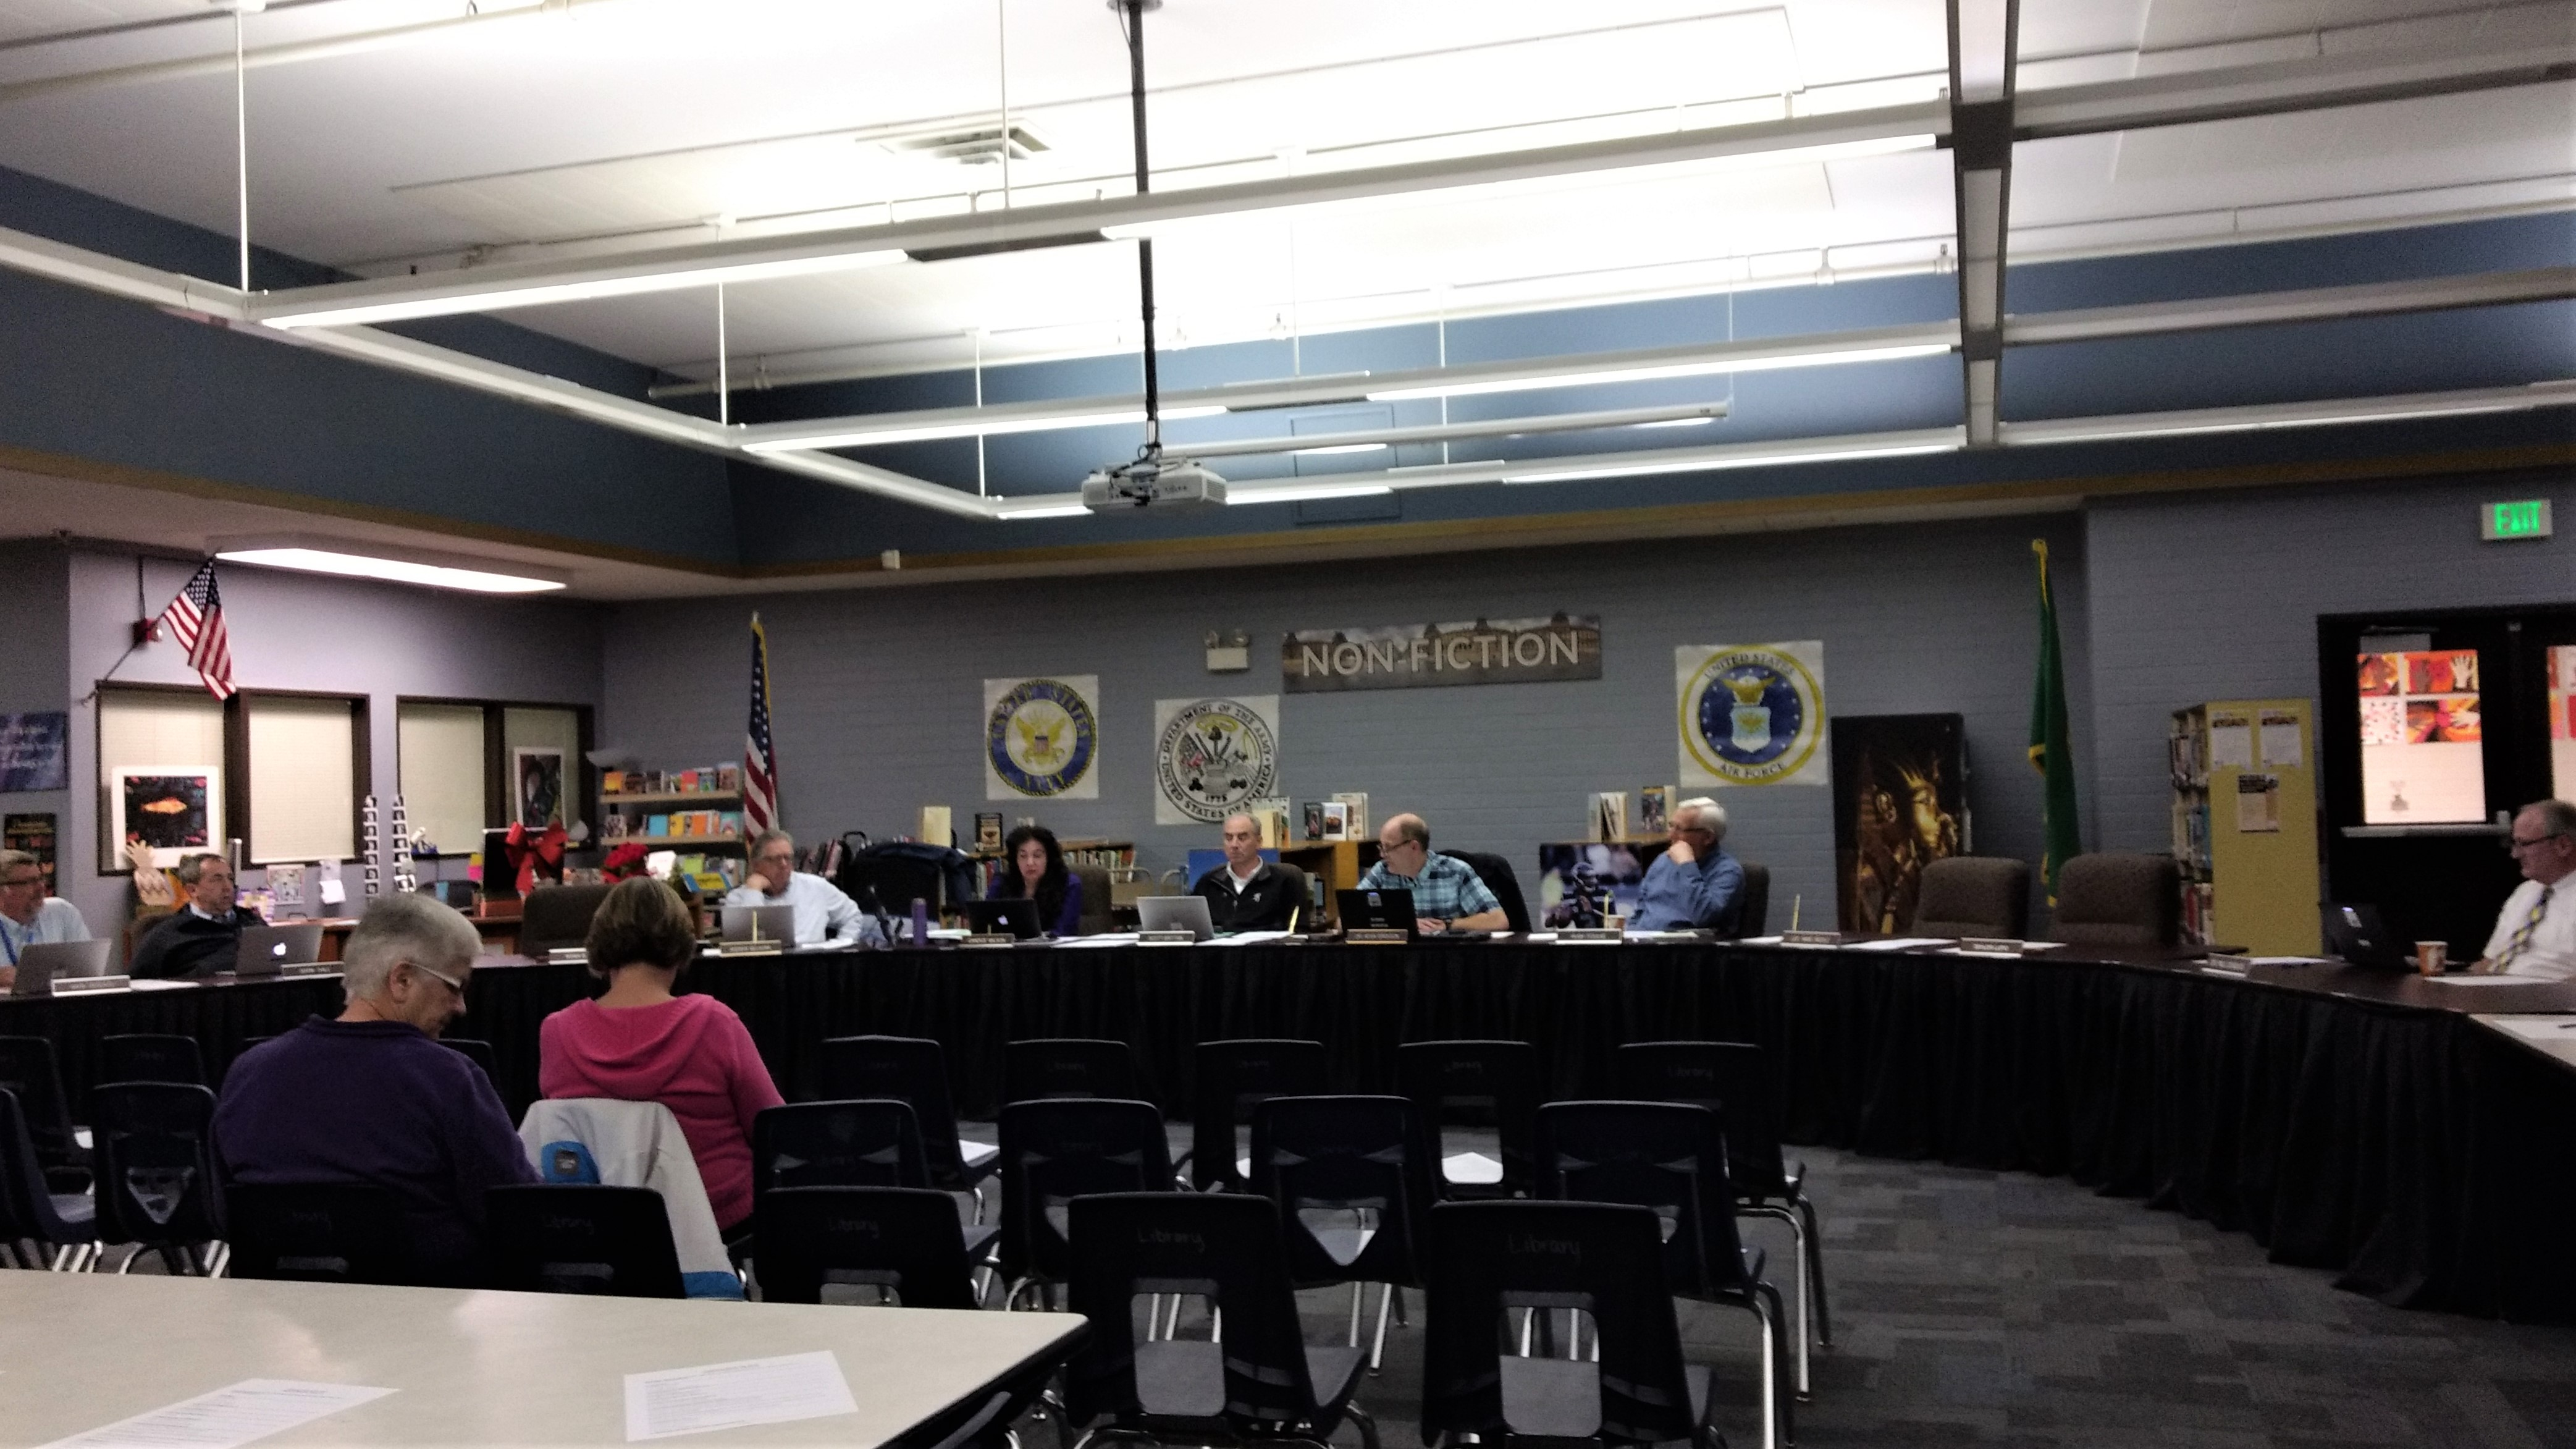 Board members and guests at a regular meeting of the Ferndale School Board (March 26, 2019). Photo: My Ferndale News